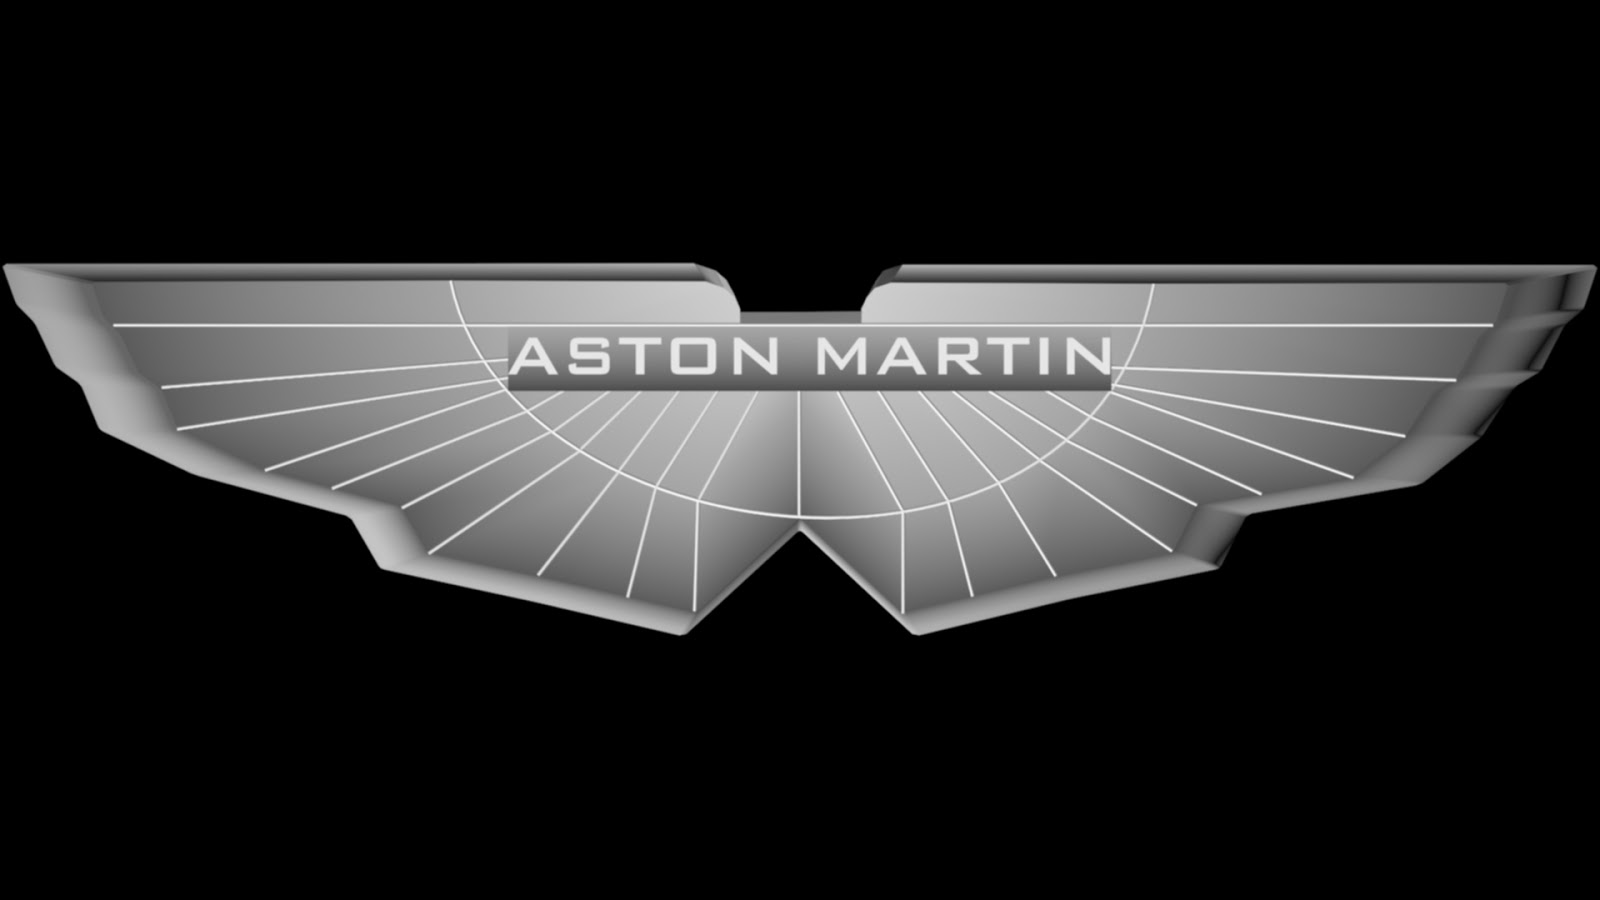 sports car maker aston martin to cut up to 295 jobs. Black Bedroom Furniture Sets. Home Design Ideas